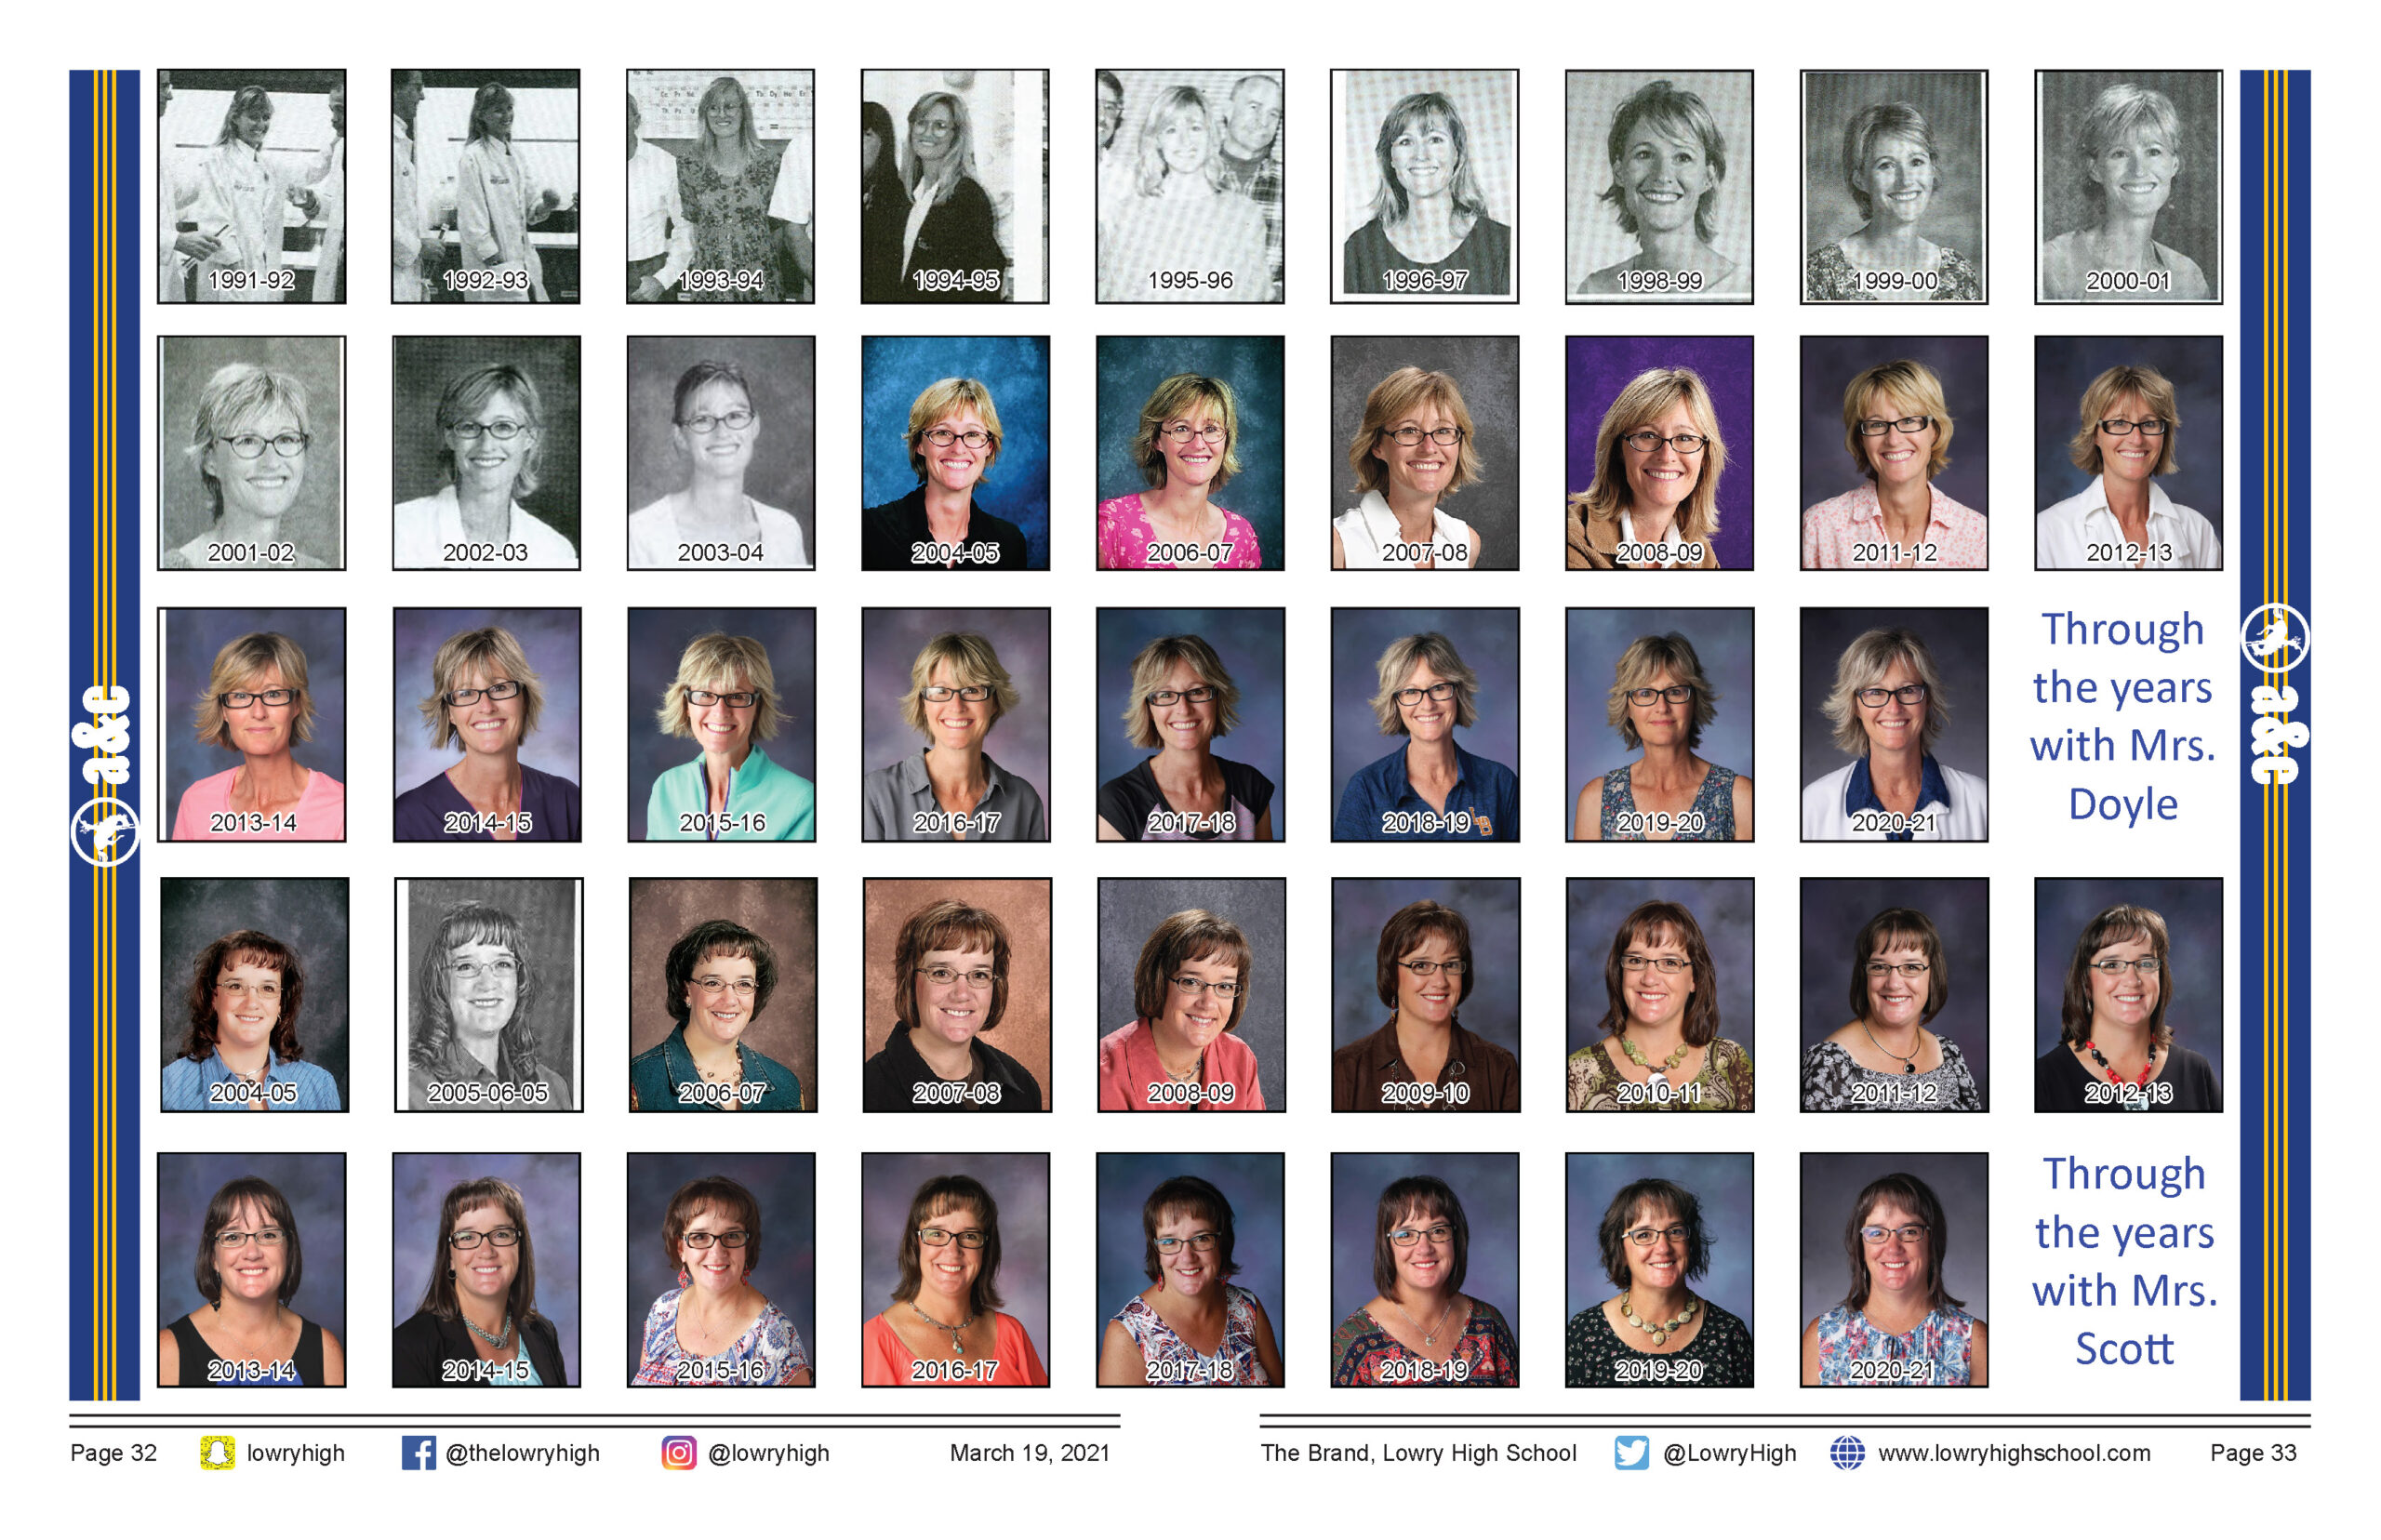 Through the years with Mrs. Doyle and Mrs. Scott